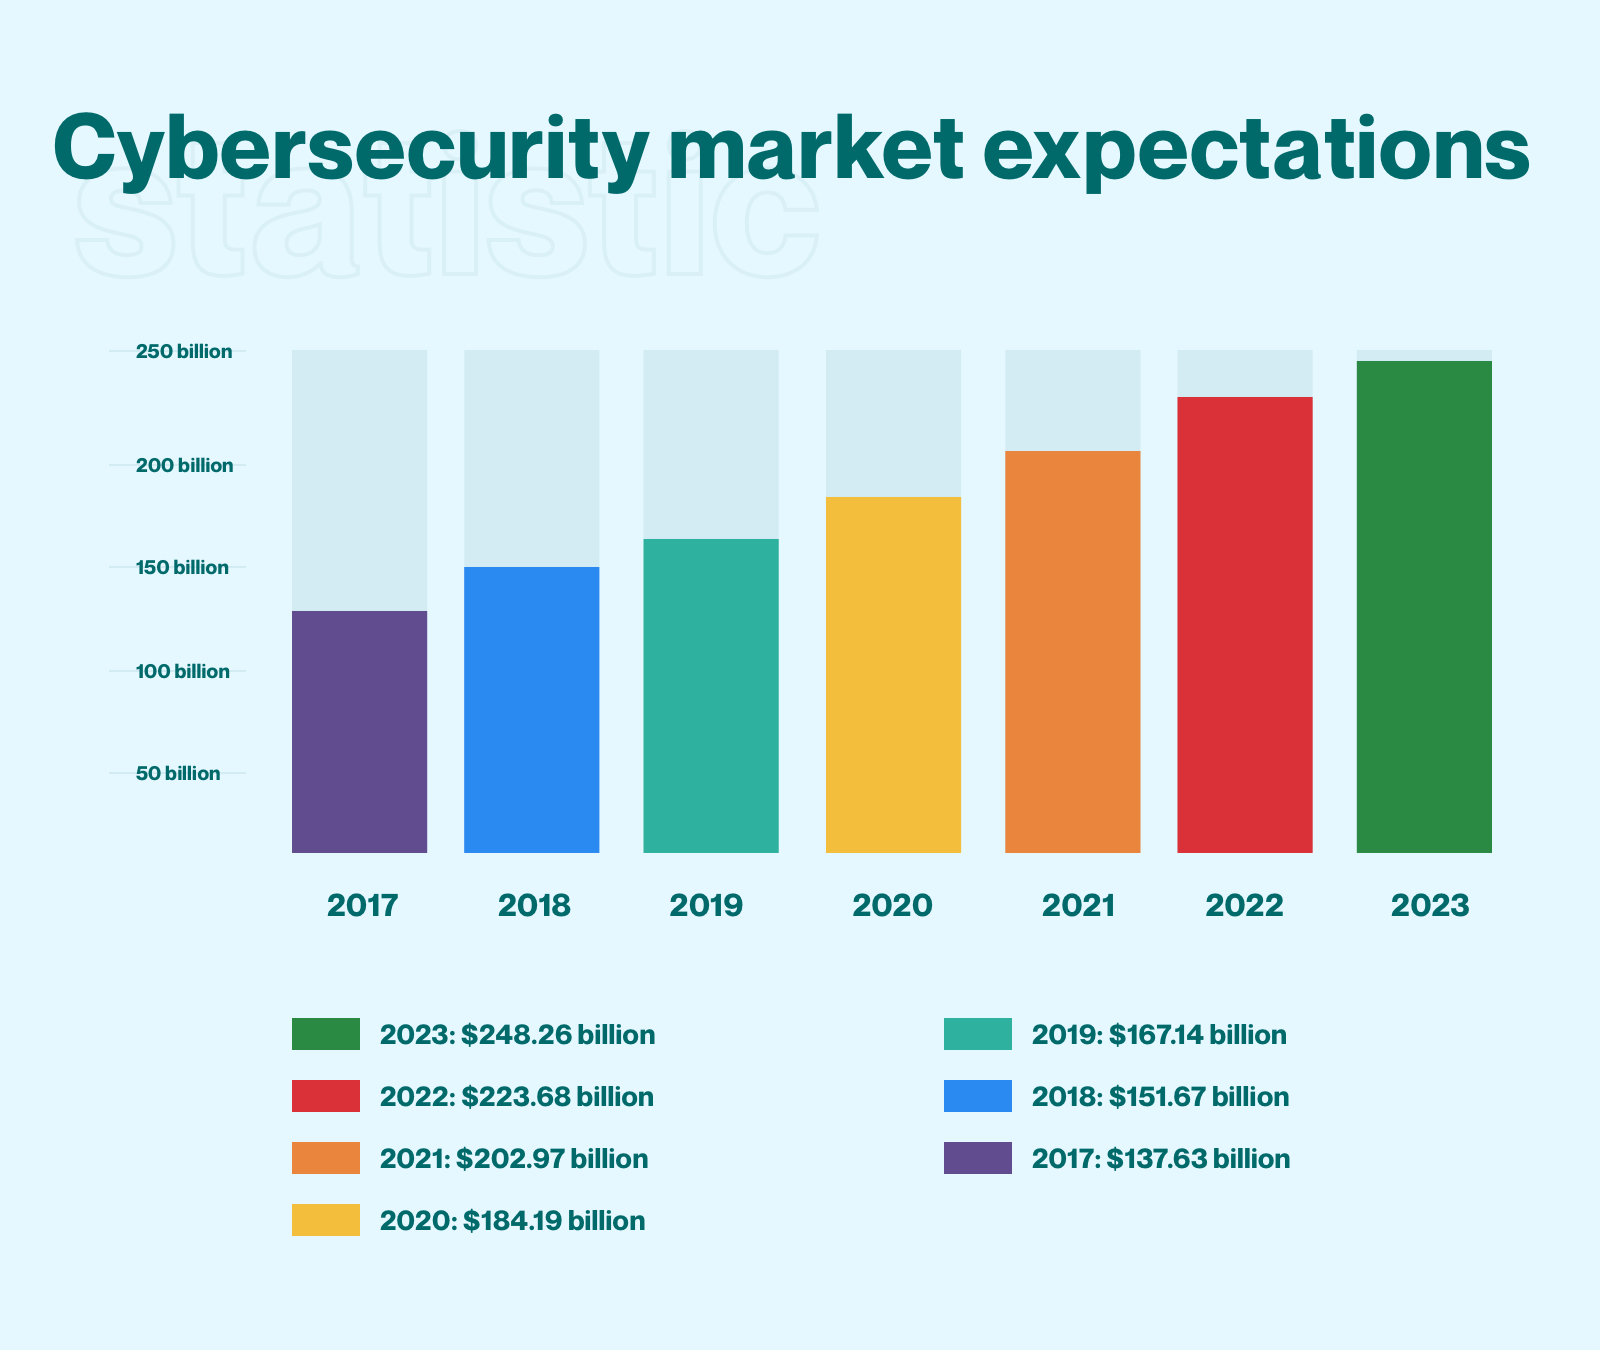 Cybersecurity market expectations